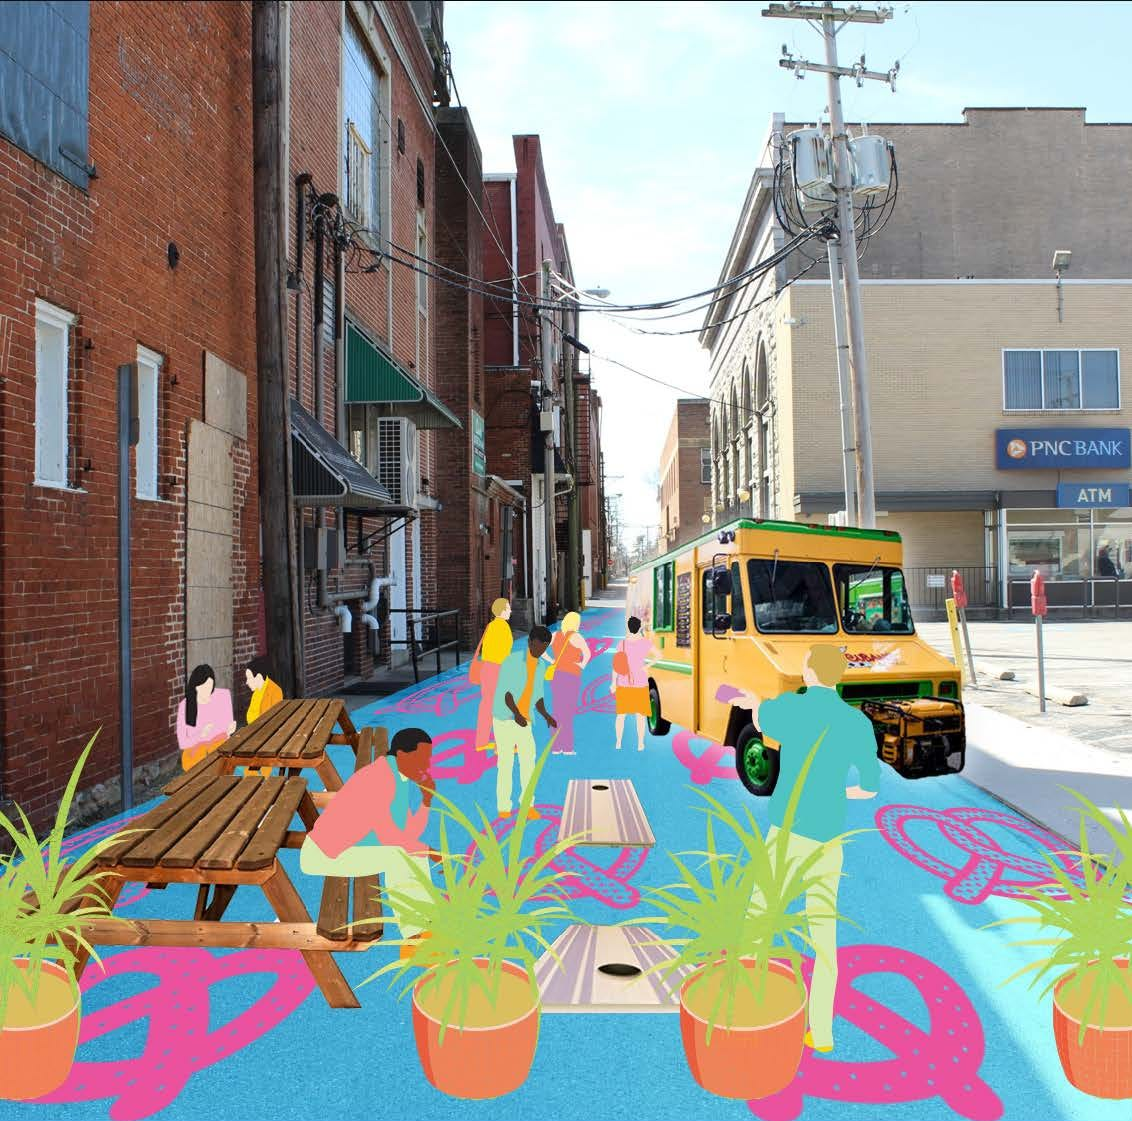 Art alley pop-up coming to downtown Hanover during Sip & Stroll